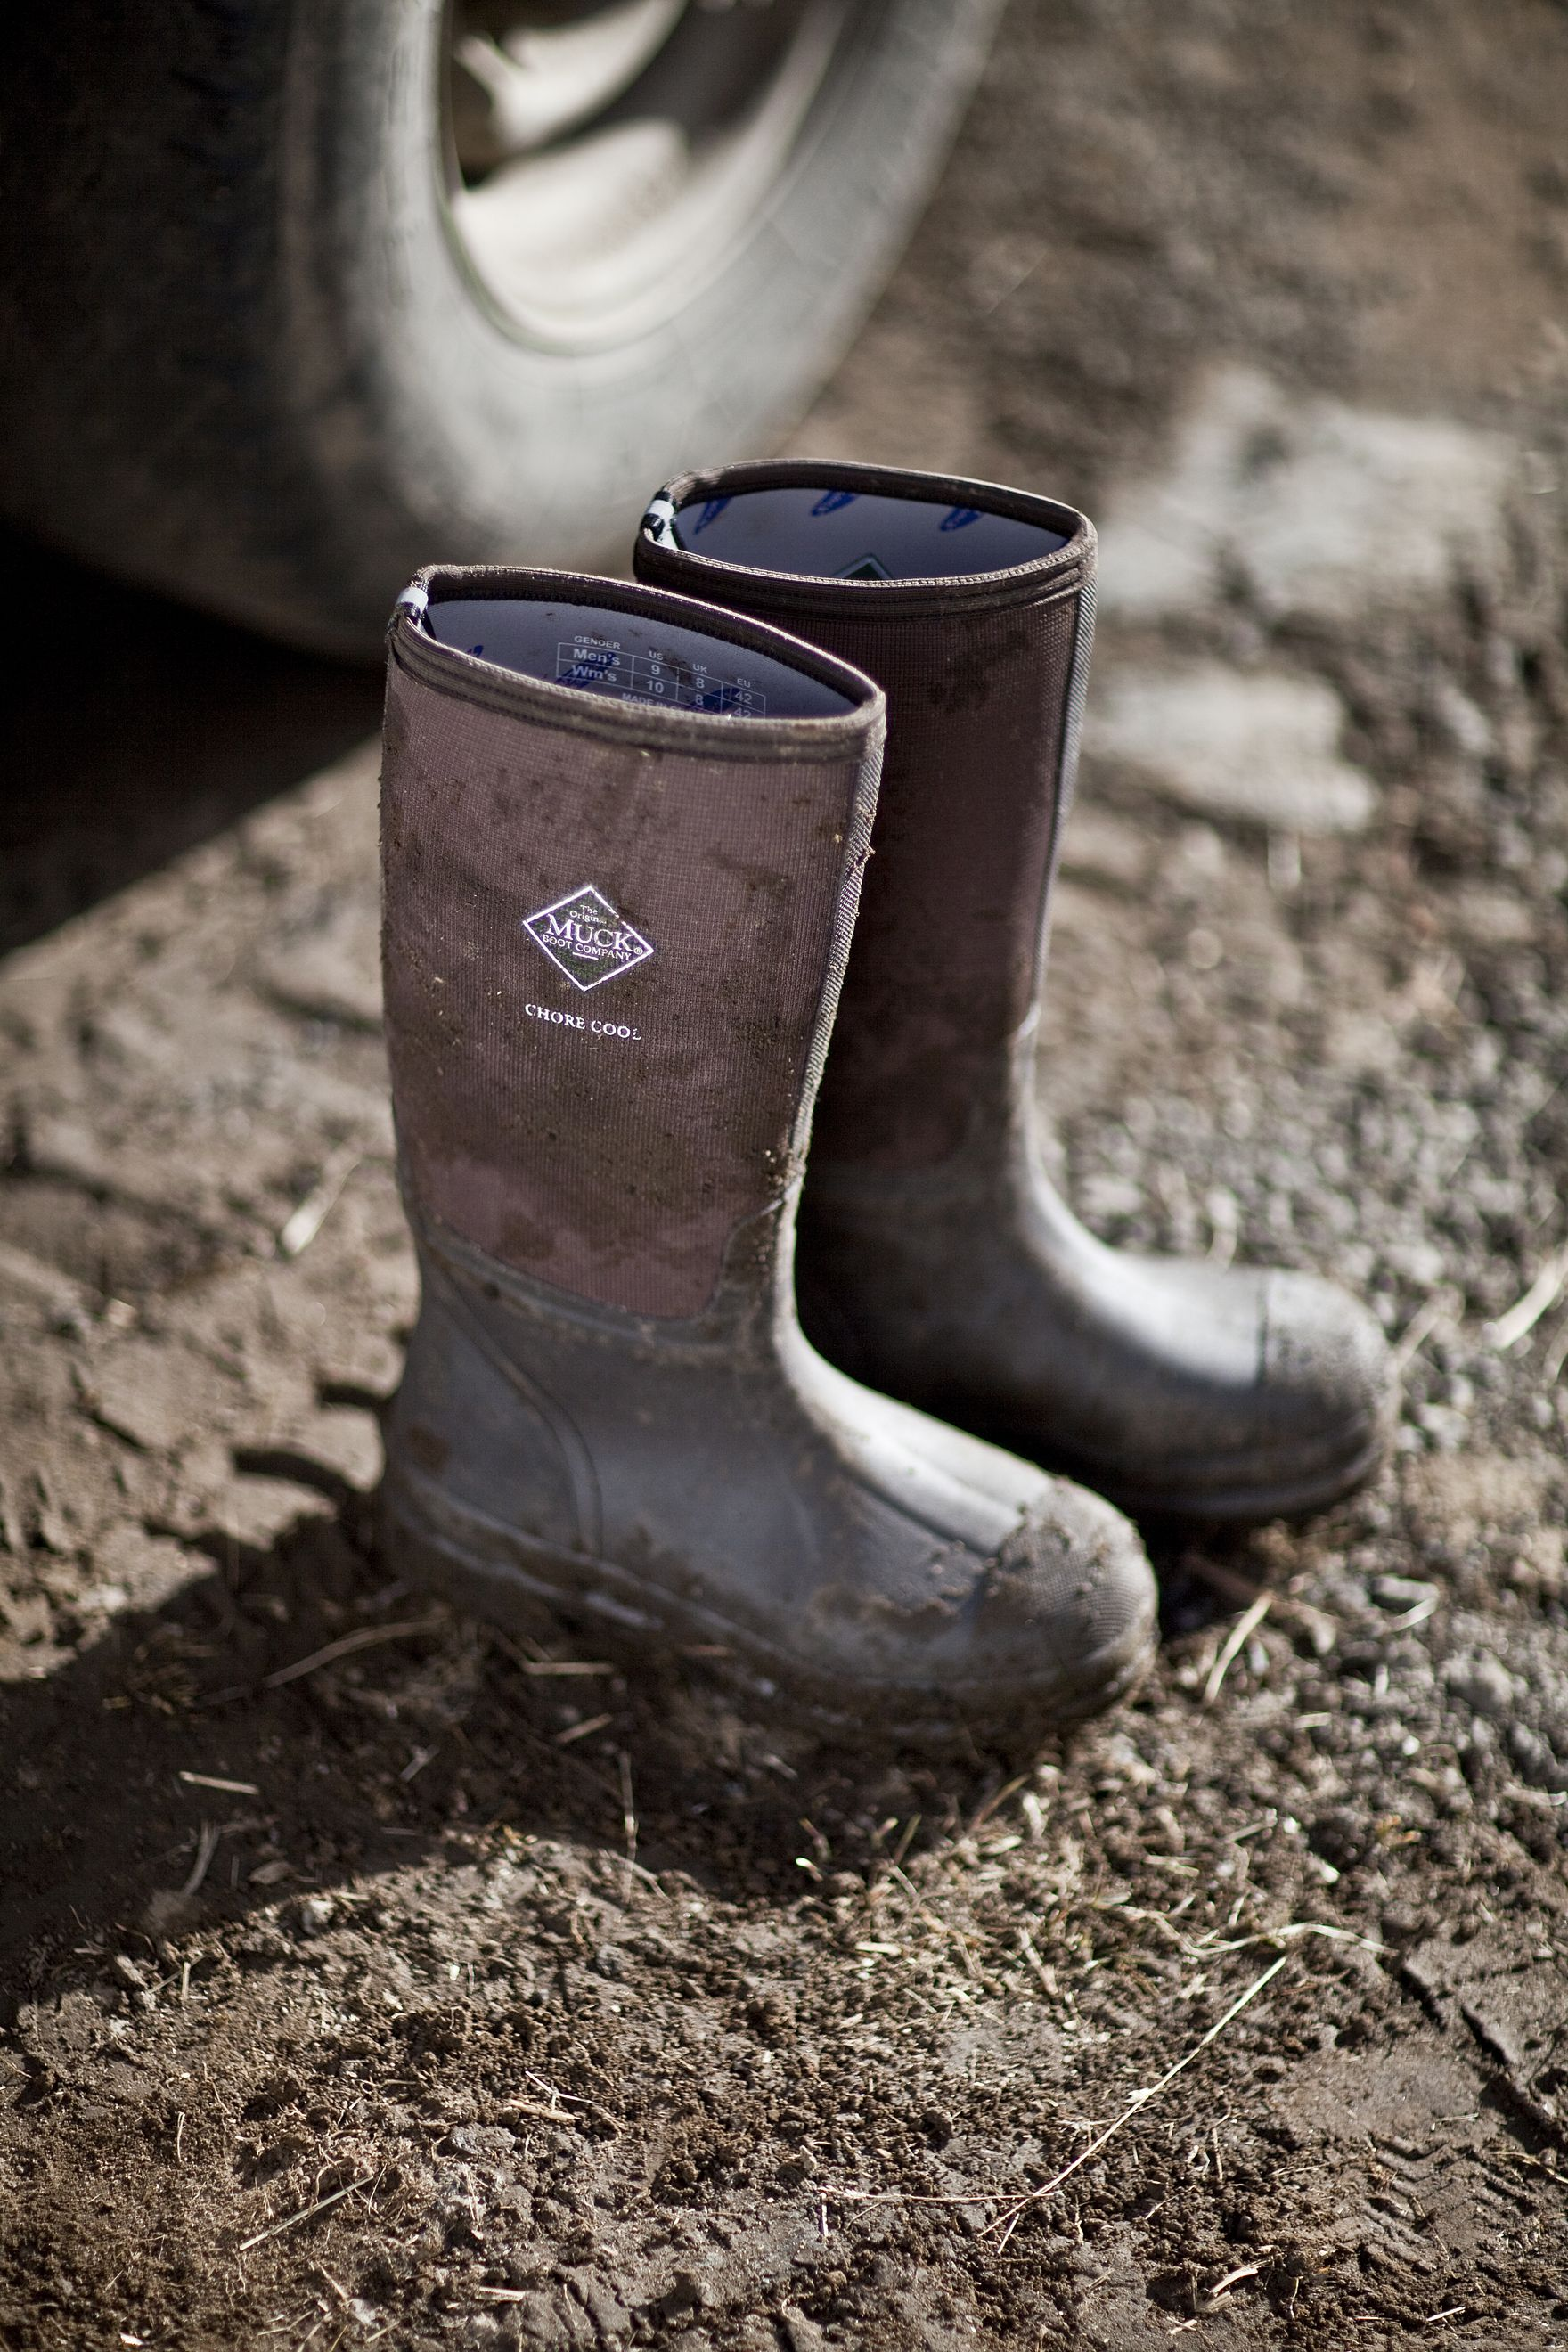 78283b9dbe4 Chore Cool Boots 2 | Muck It Up! | Boots, Muck boots, Cool boots